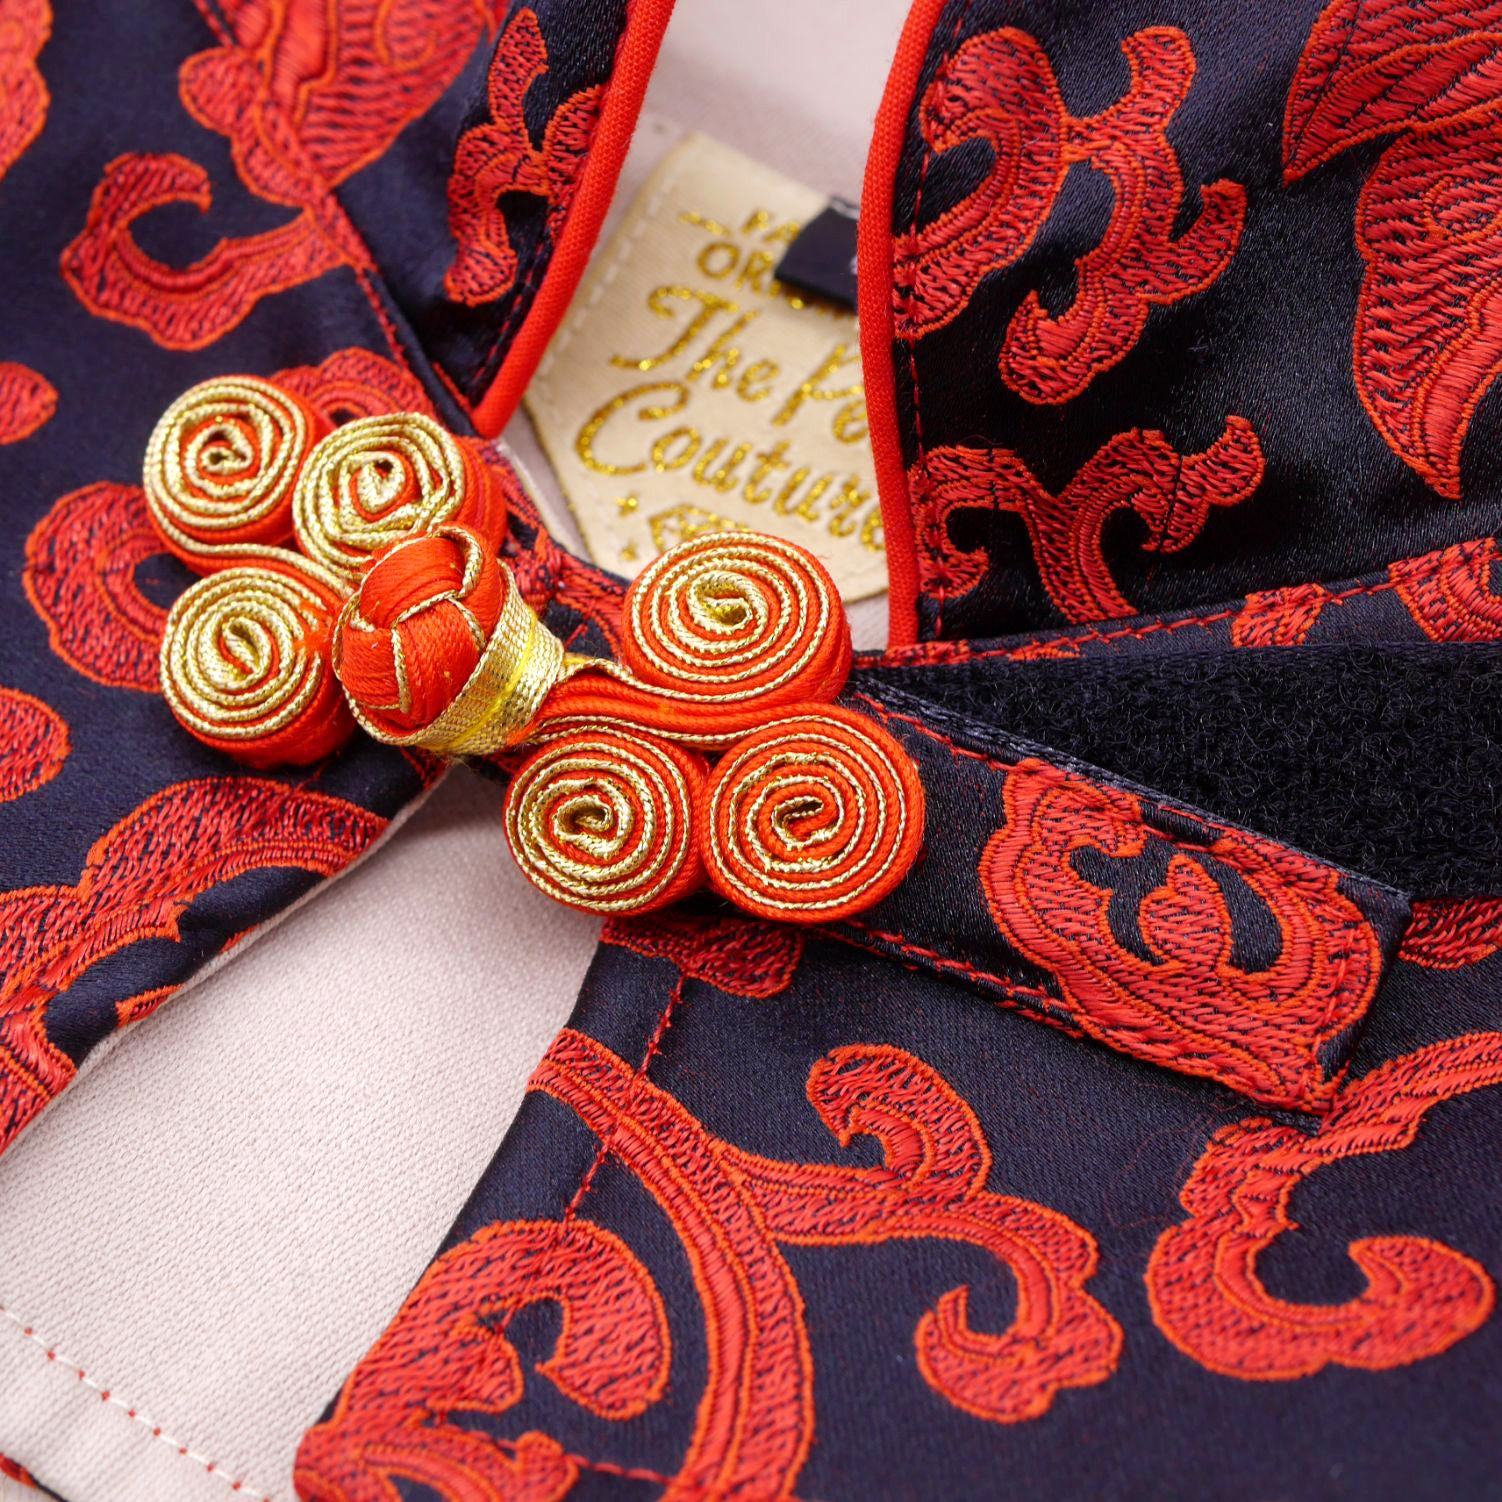 Capes -  Black Garnet | Chinese New Year Edition - The Pet's Couture